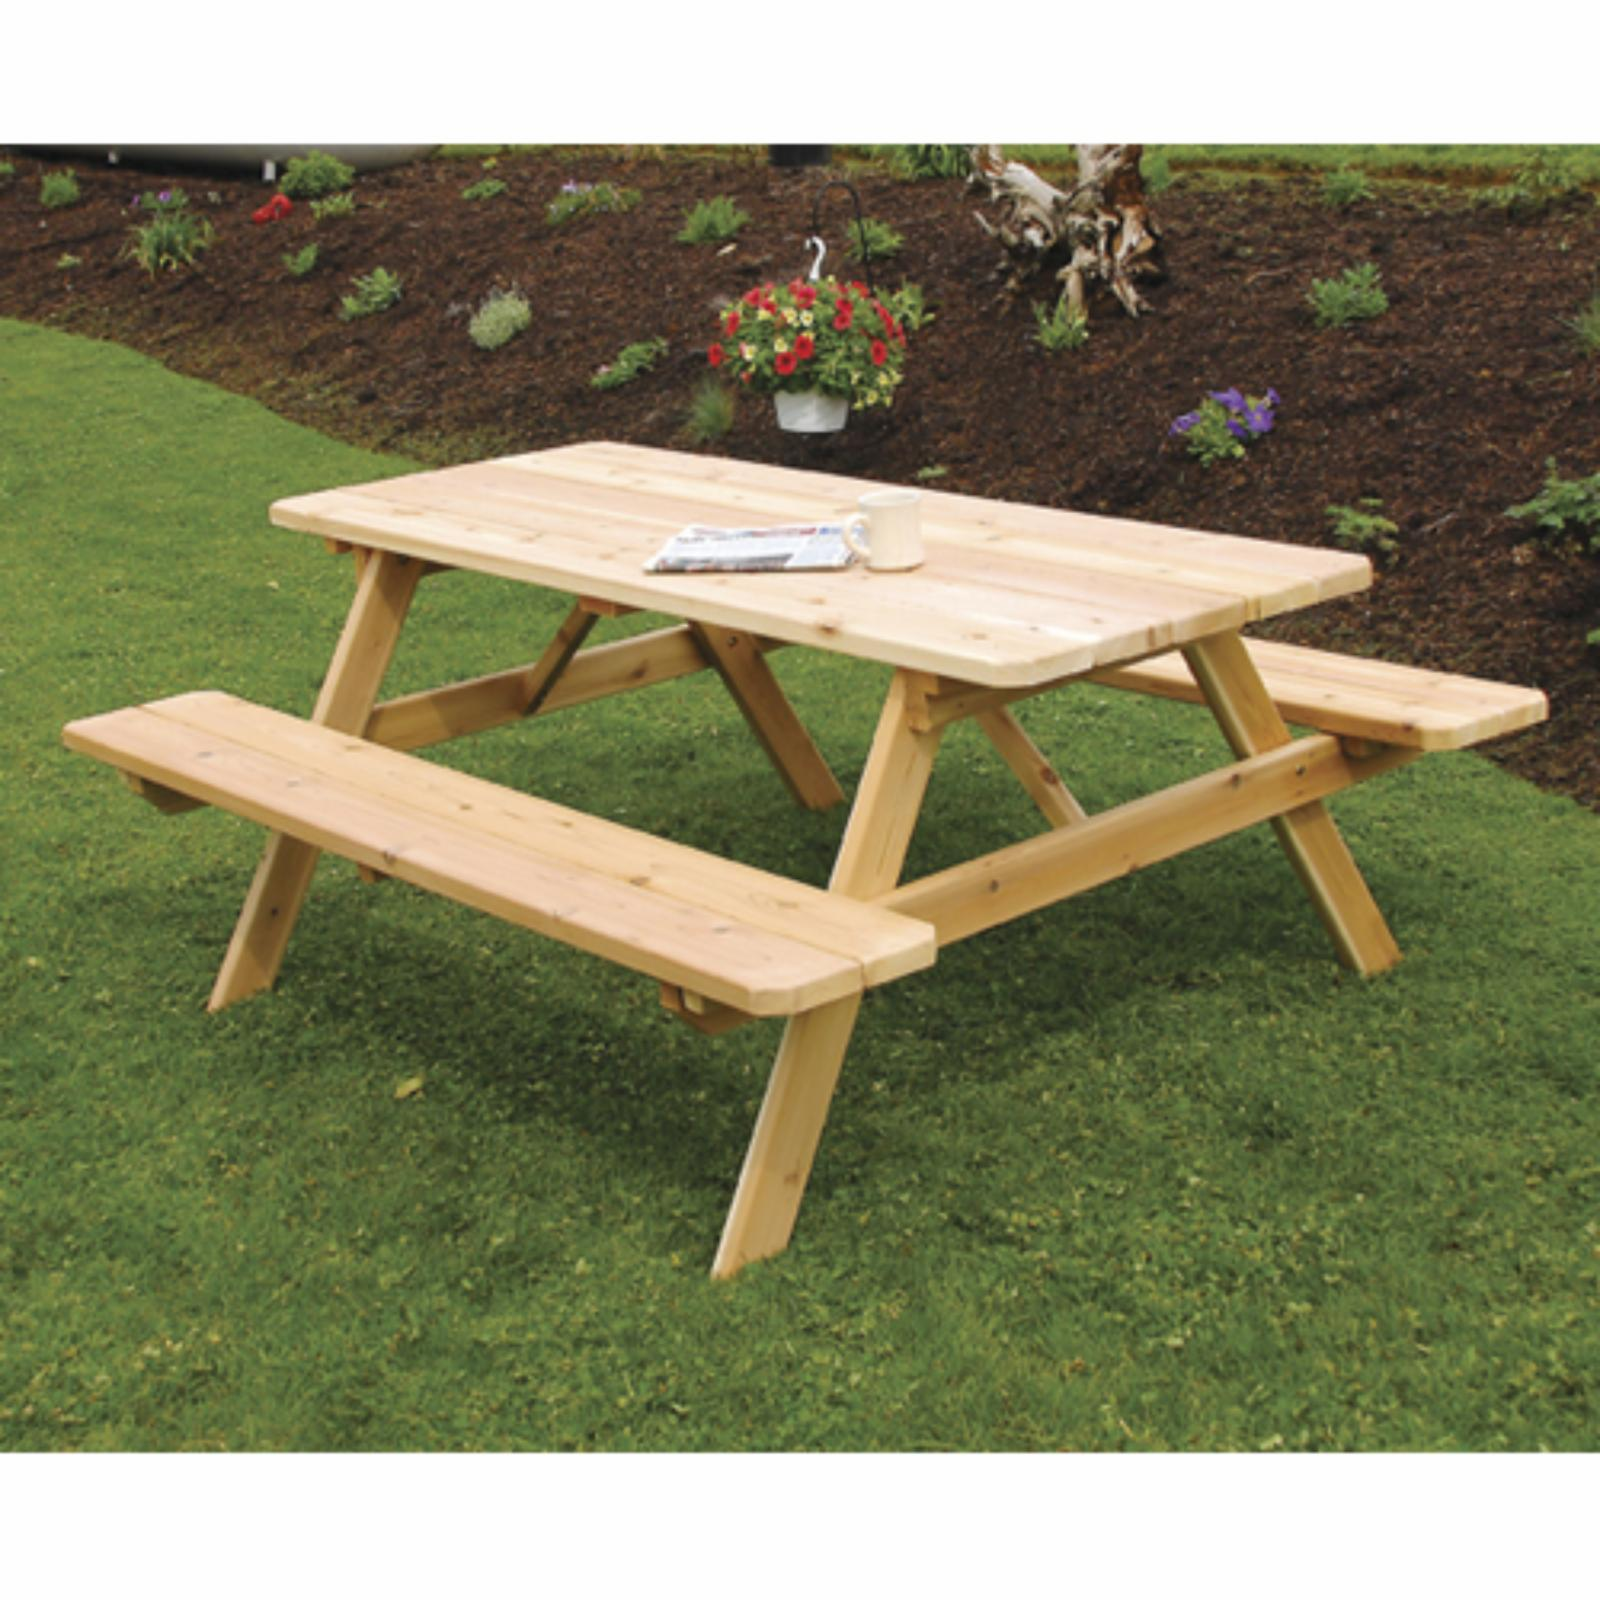 Outdoor A & L Furniture Western Red Cedar Picnic Table wi...